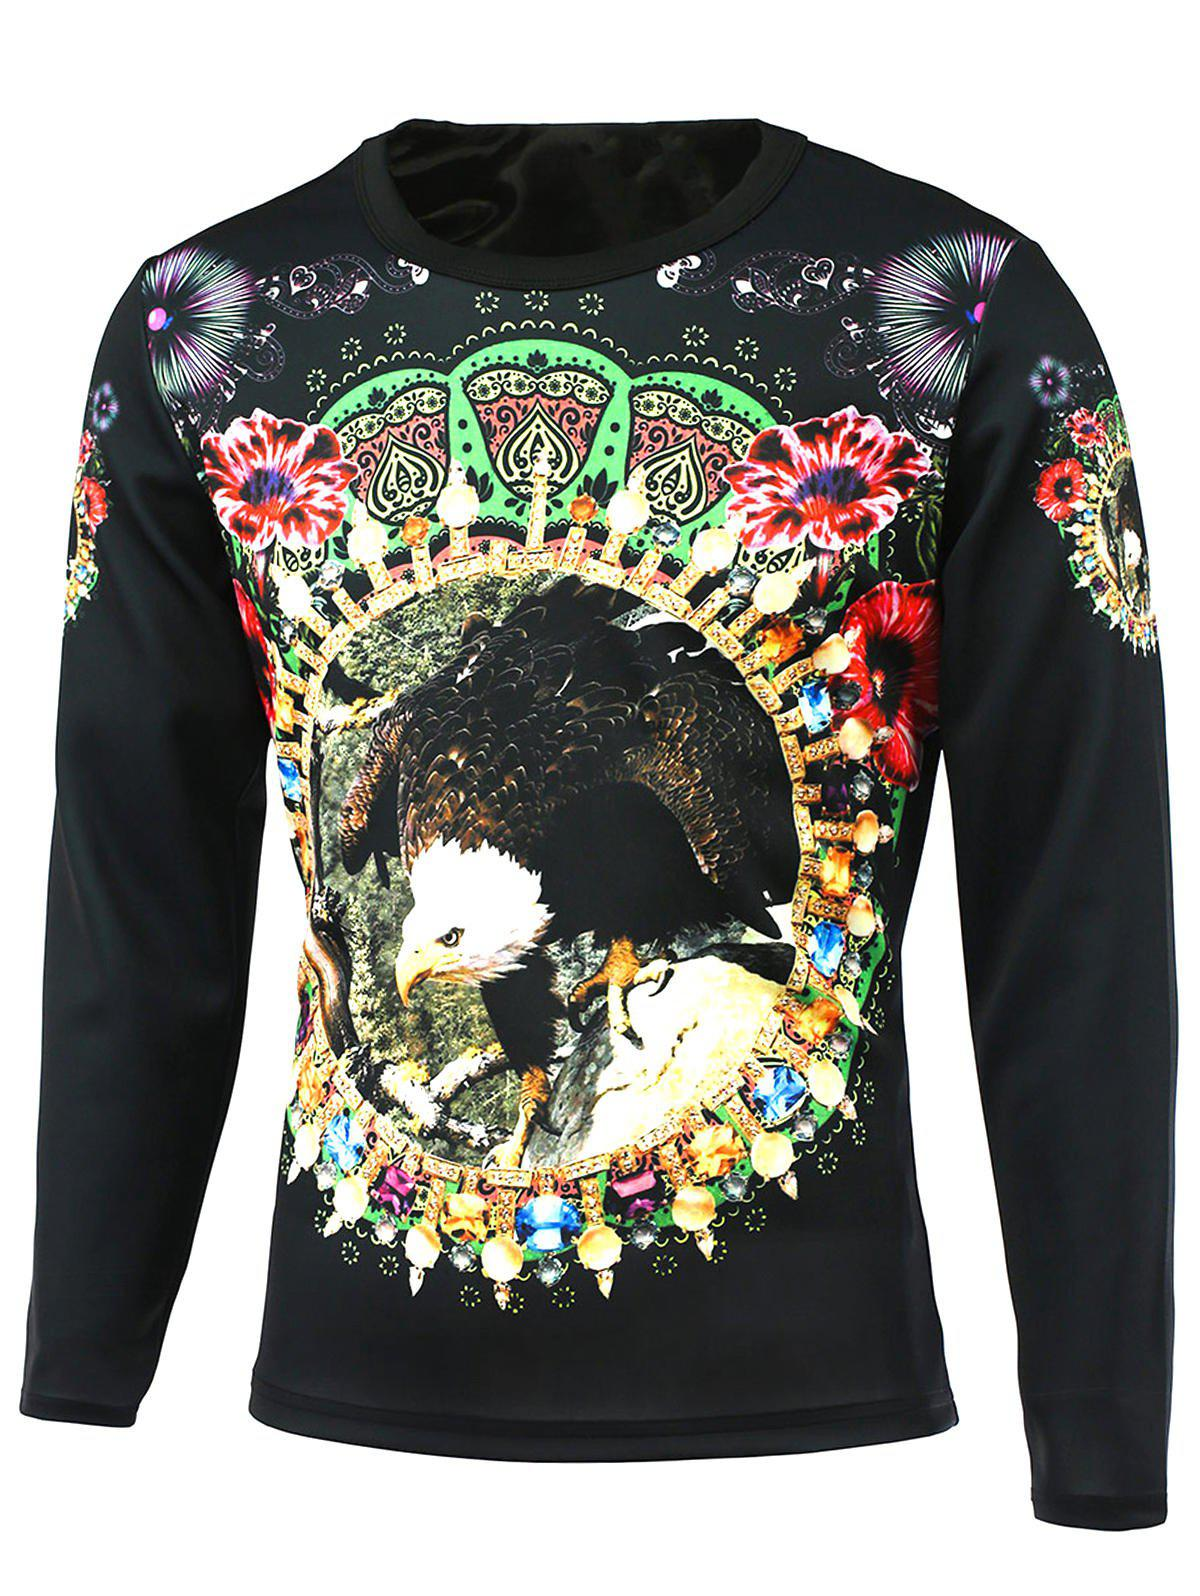 Long Sleeve Floral 3D Bird Print Round Neck T-Shirt plus size bird and floral print v neck long sleeve t shirt